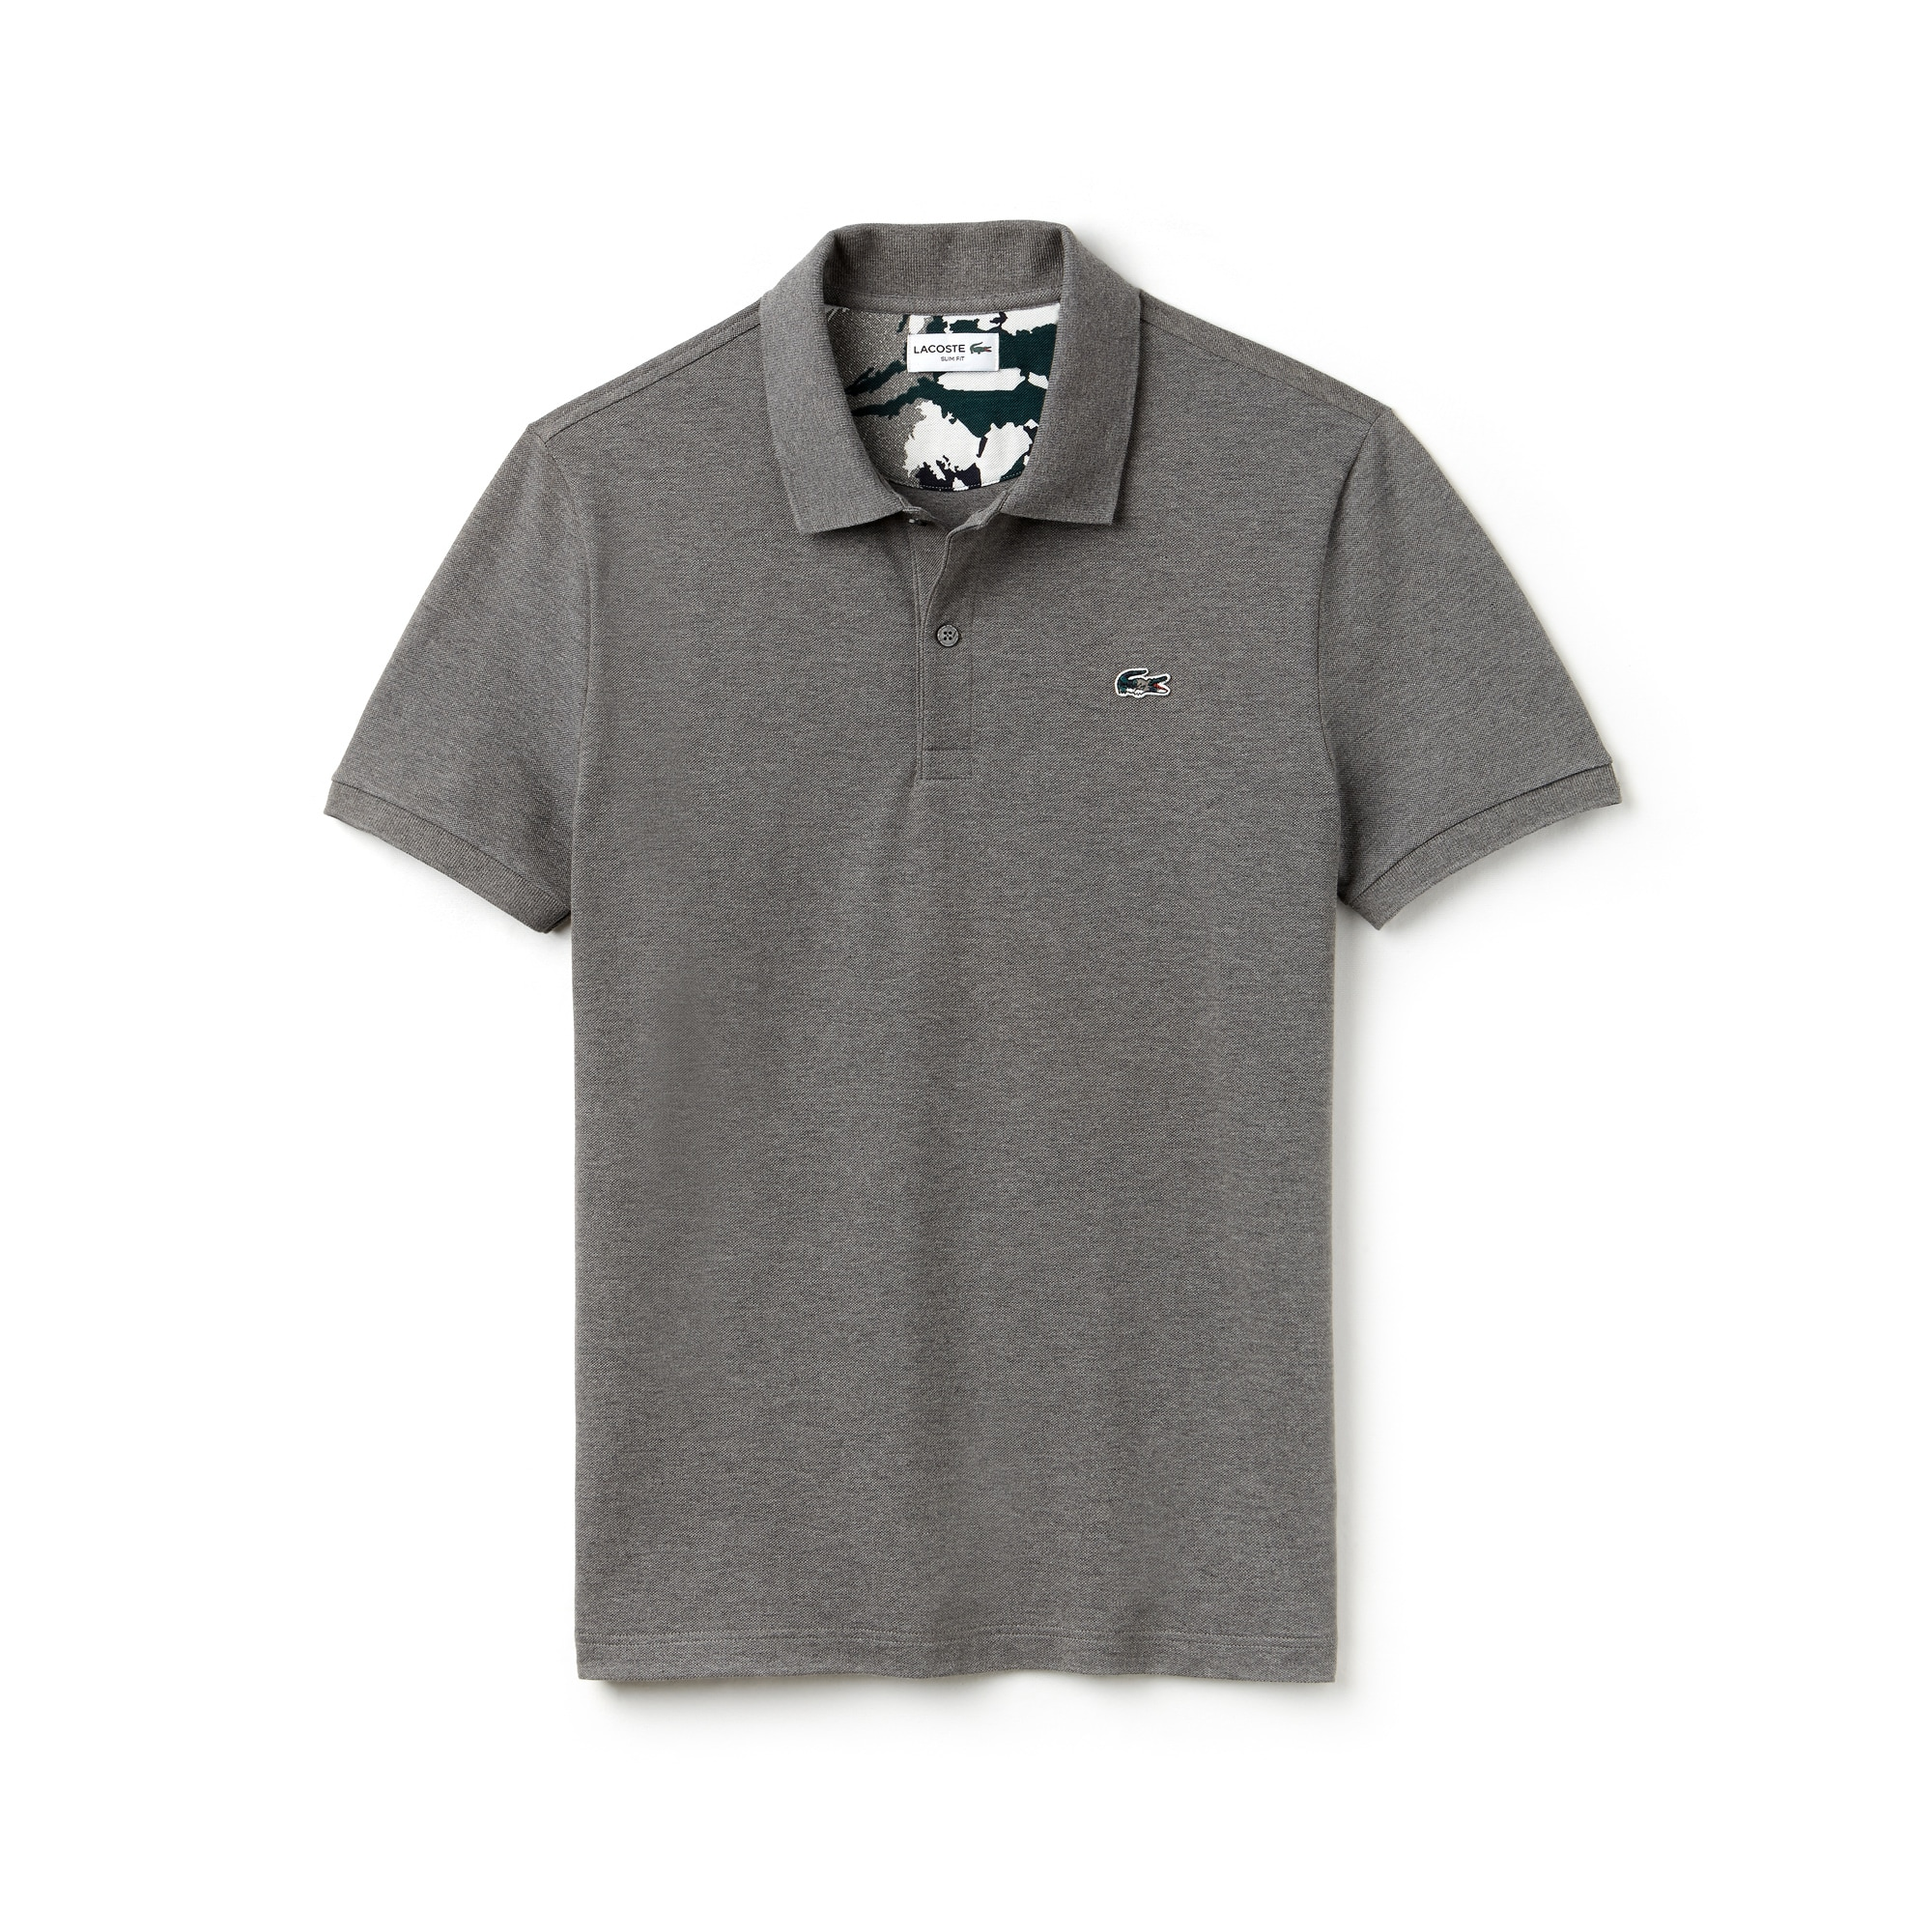 Mens 라코스테 Lacoste Slim Fit Stretch Mini Pique Polo,stone grey